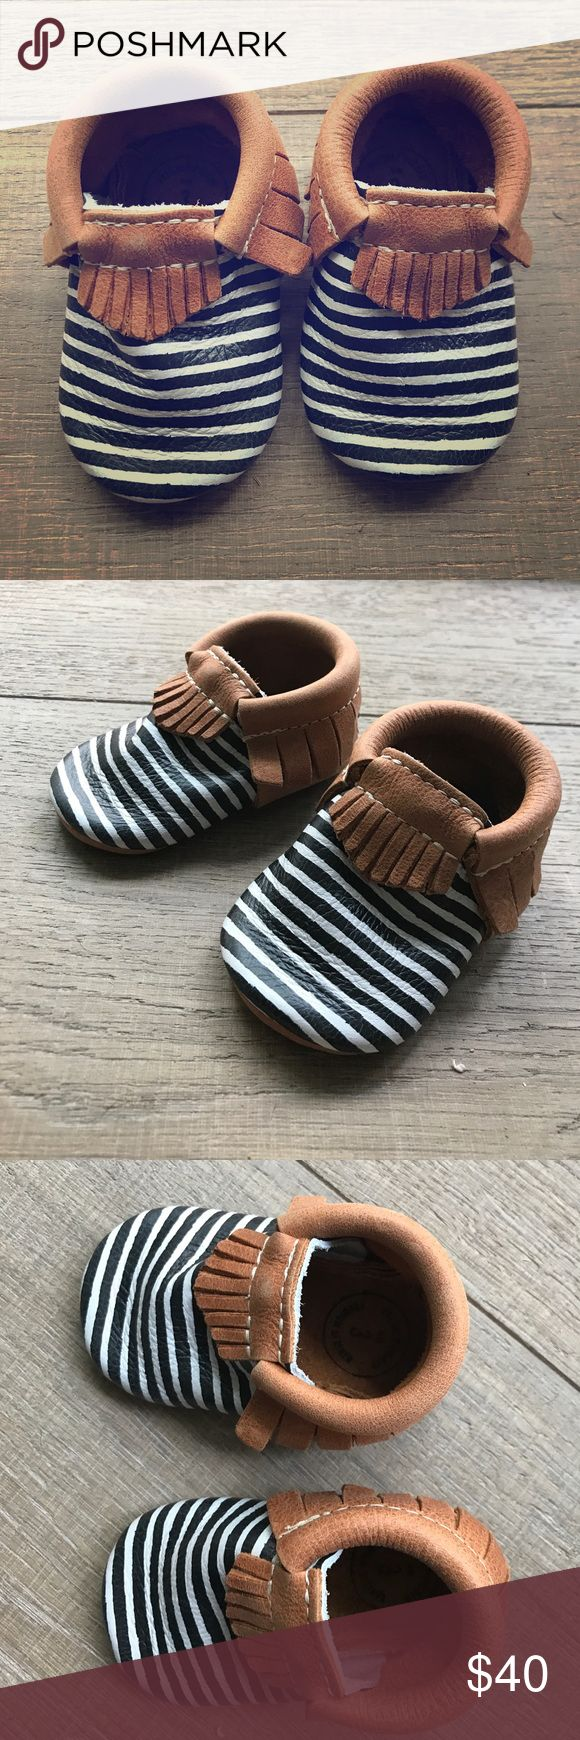 Size 3 Freshly Picked Black/White/Tan Mocassins These Freshly Picked Size 3 black and white striped leather  toddler mocassins have never been worn. Brand new - perfect condition. Freshly Picked Shoes Moccasins